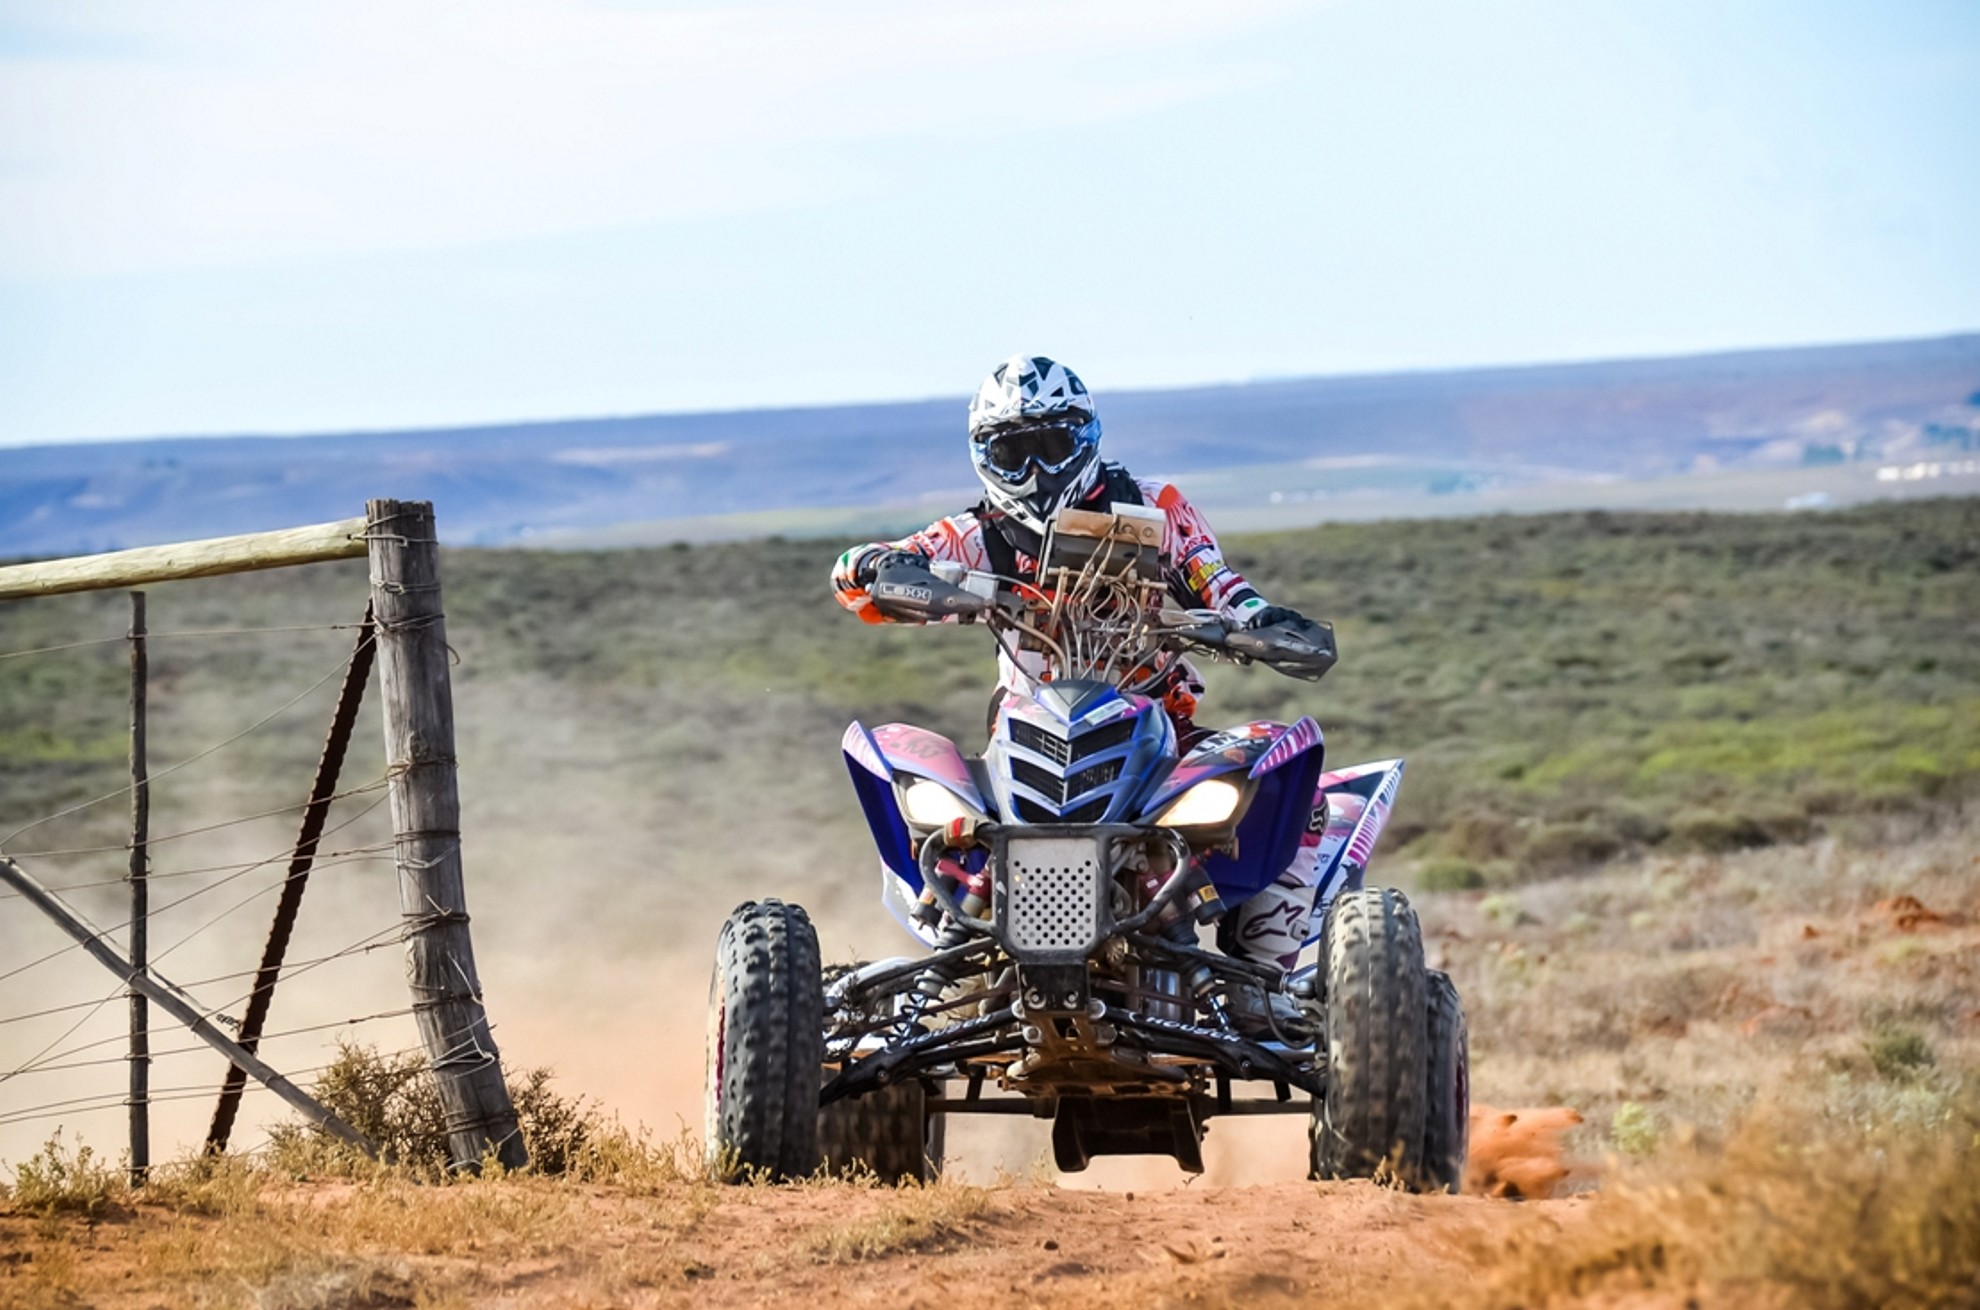 Chardri_Monk_in_action_at_Namaqua_African_Rally